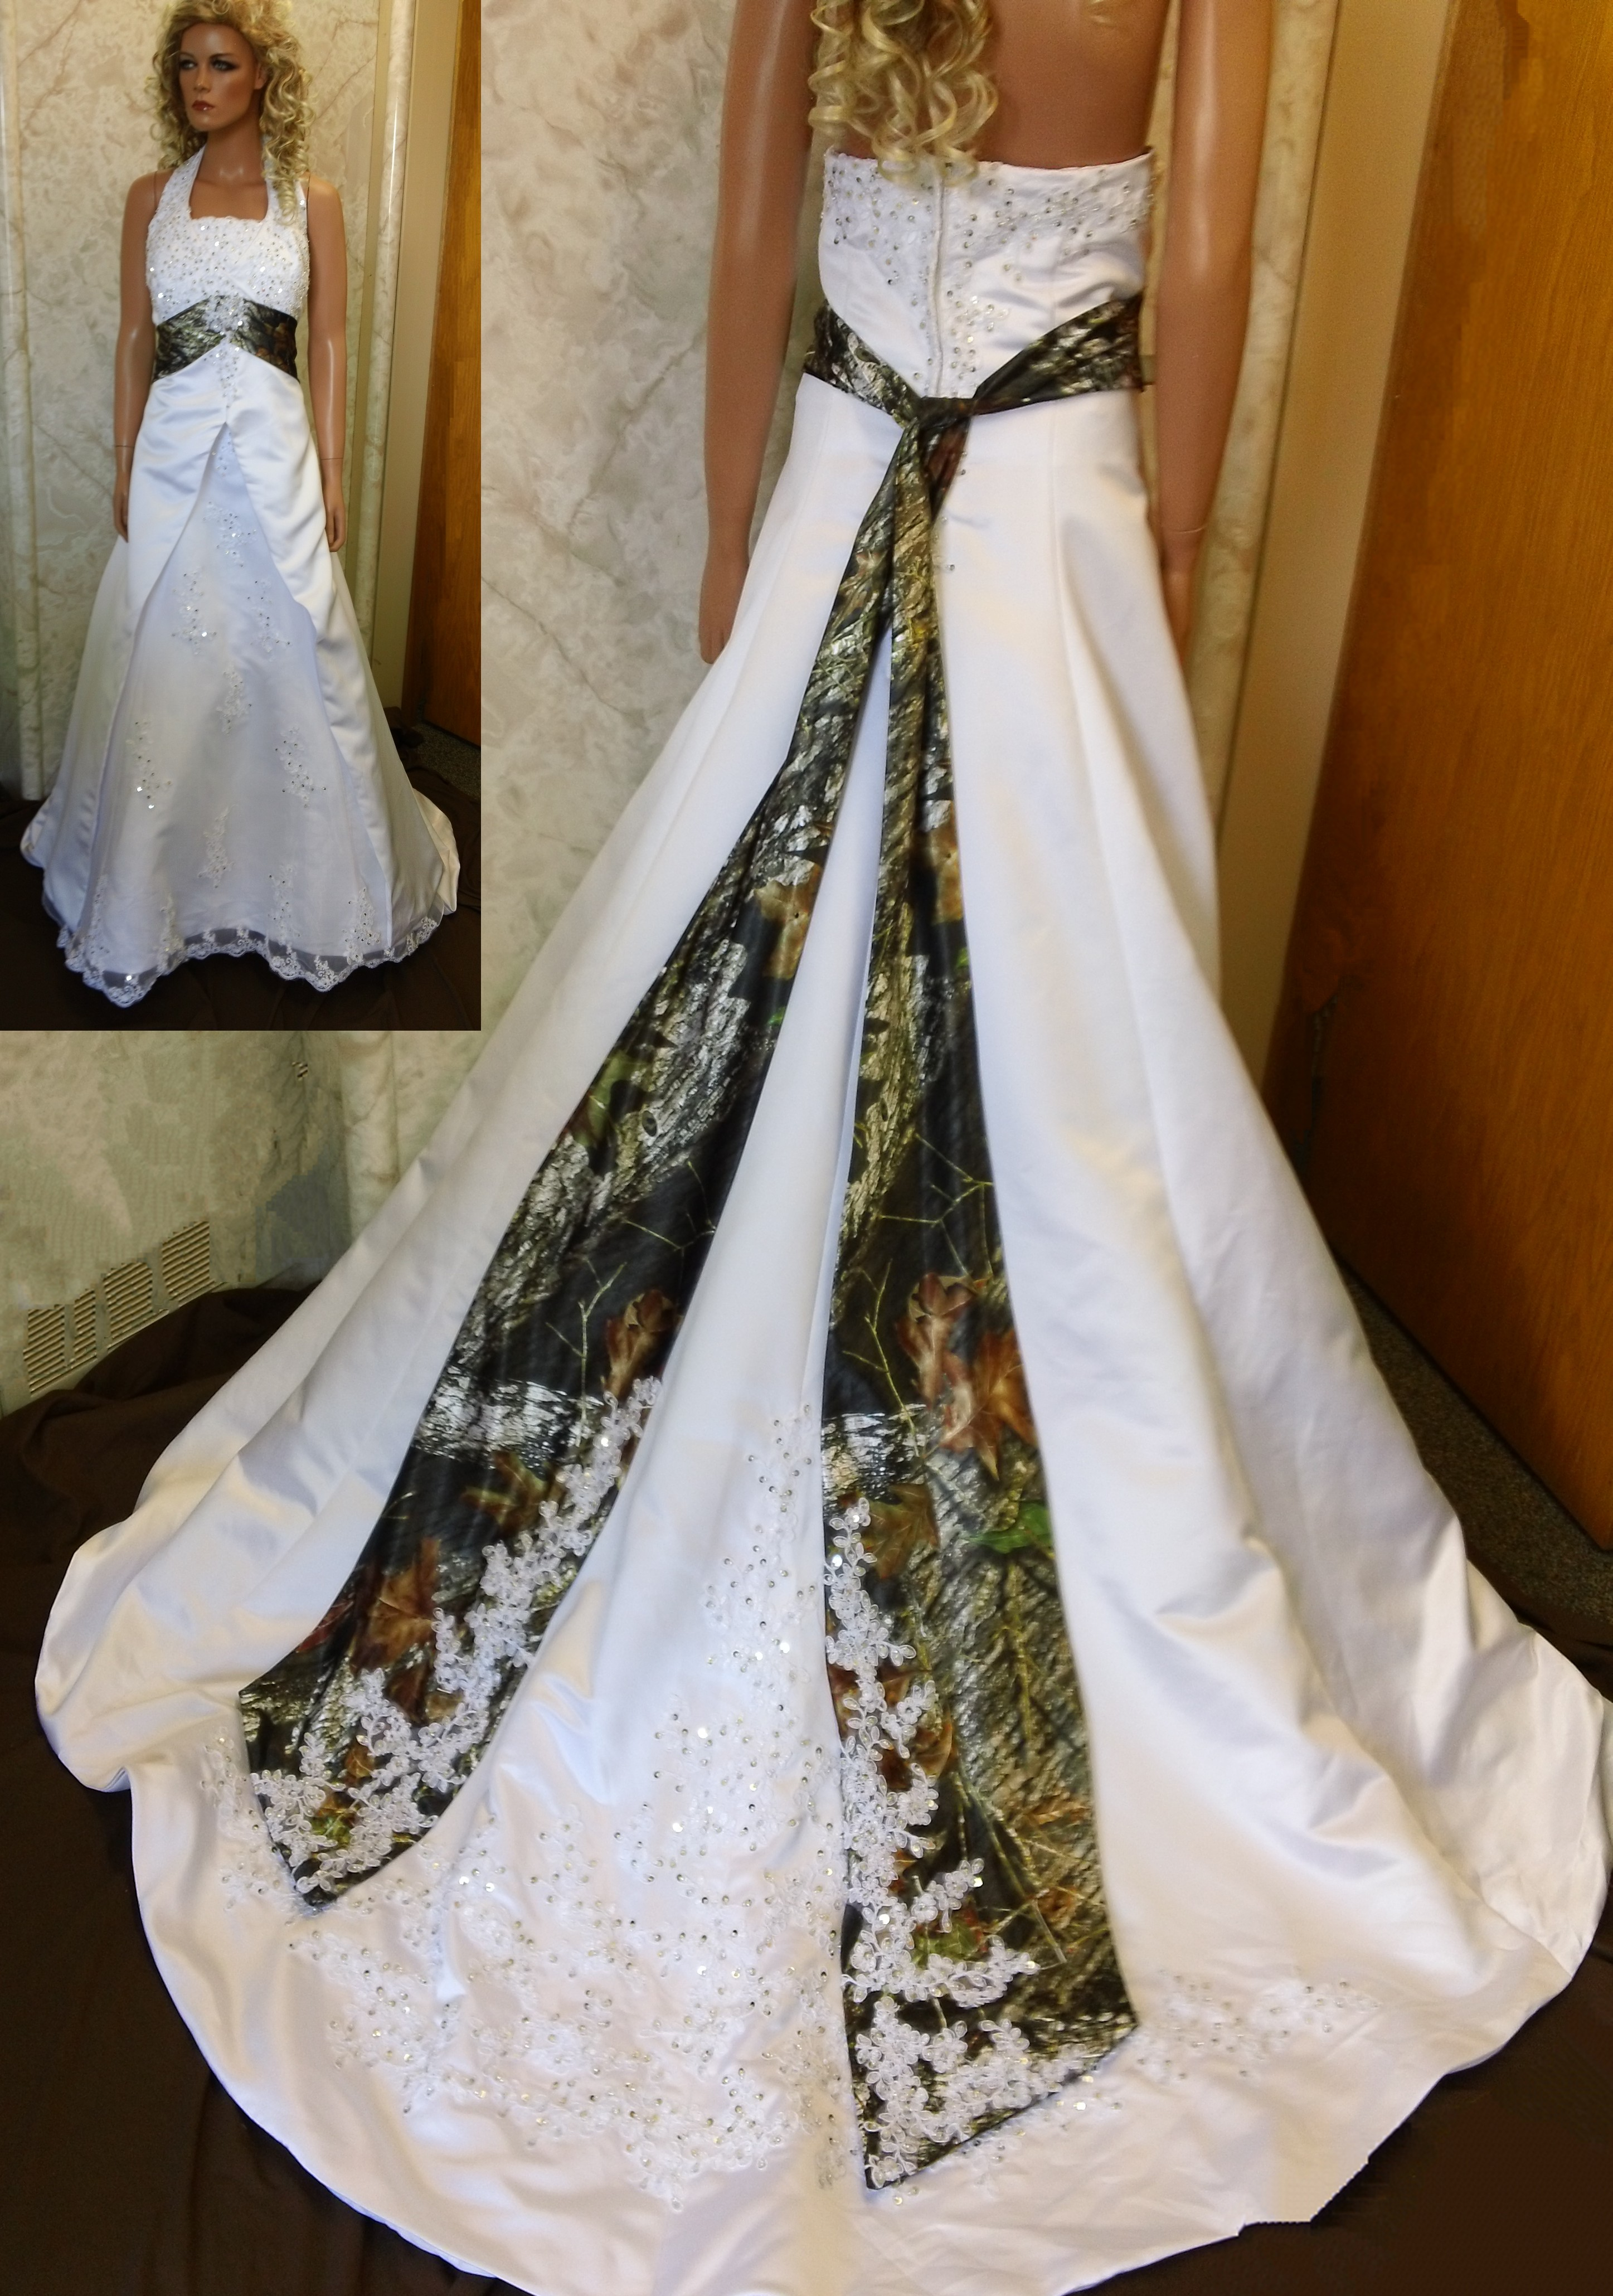 white wedding dresses with camo accents pink camo wedding dresses White Wedding Dresses With Camo Accents 47